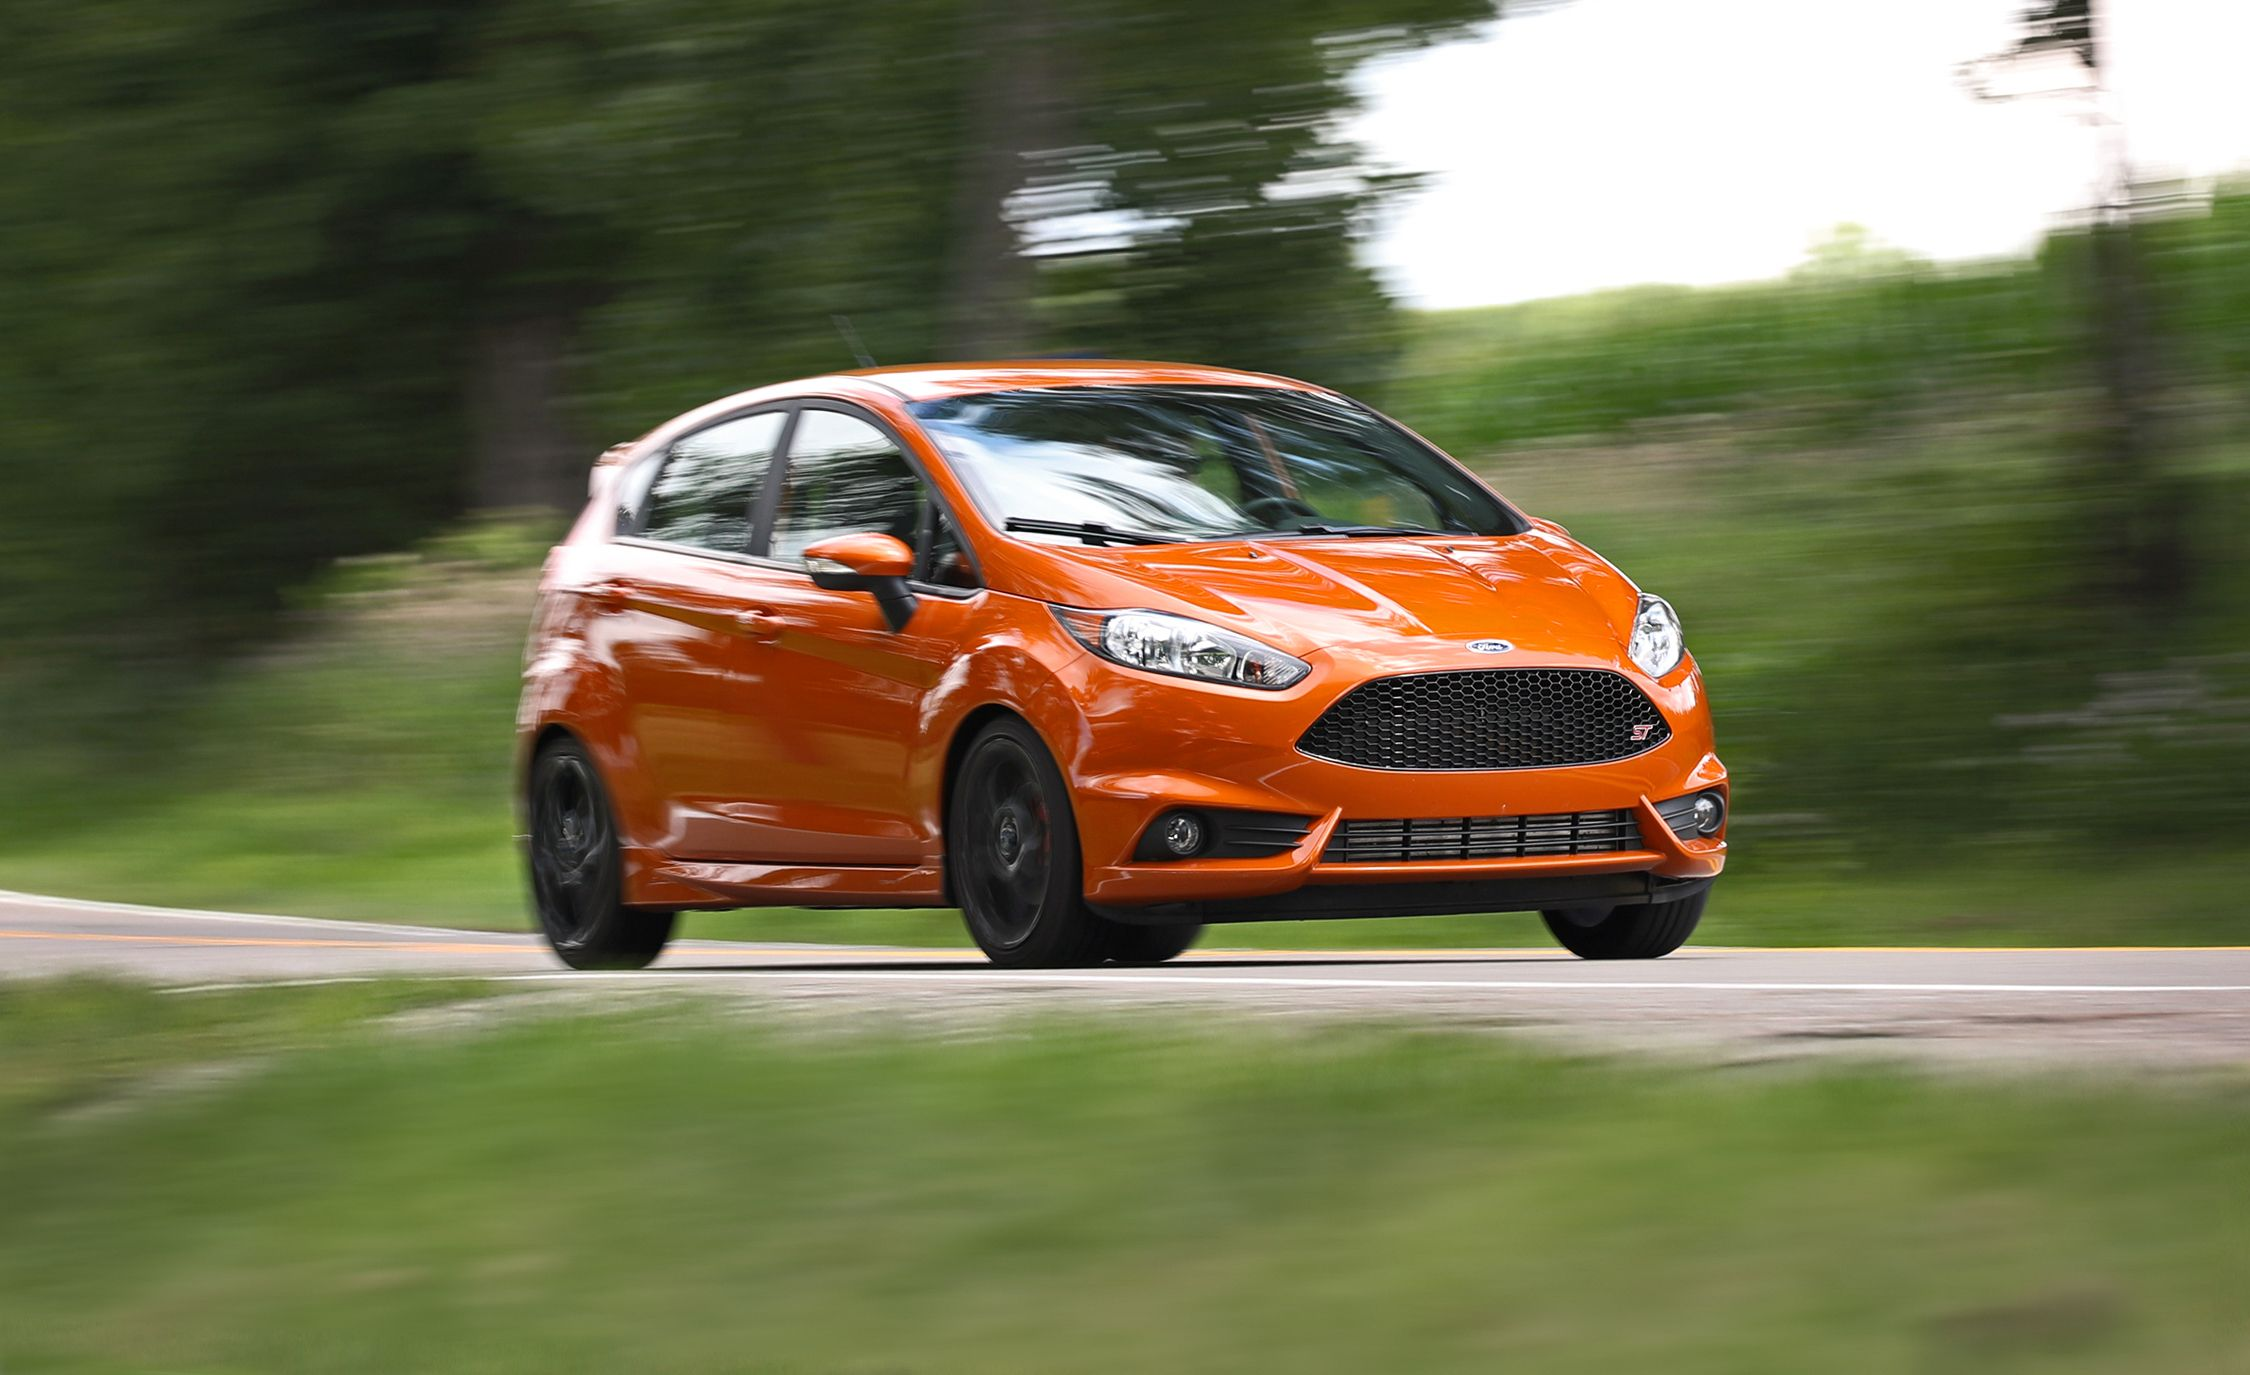 2017 Ford Fiesta St Vs Fiat 500 Abarth Mini Cooper S Hardtop Comparison Test Car And Driver